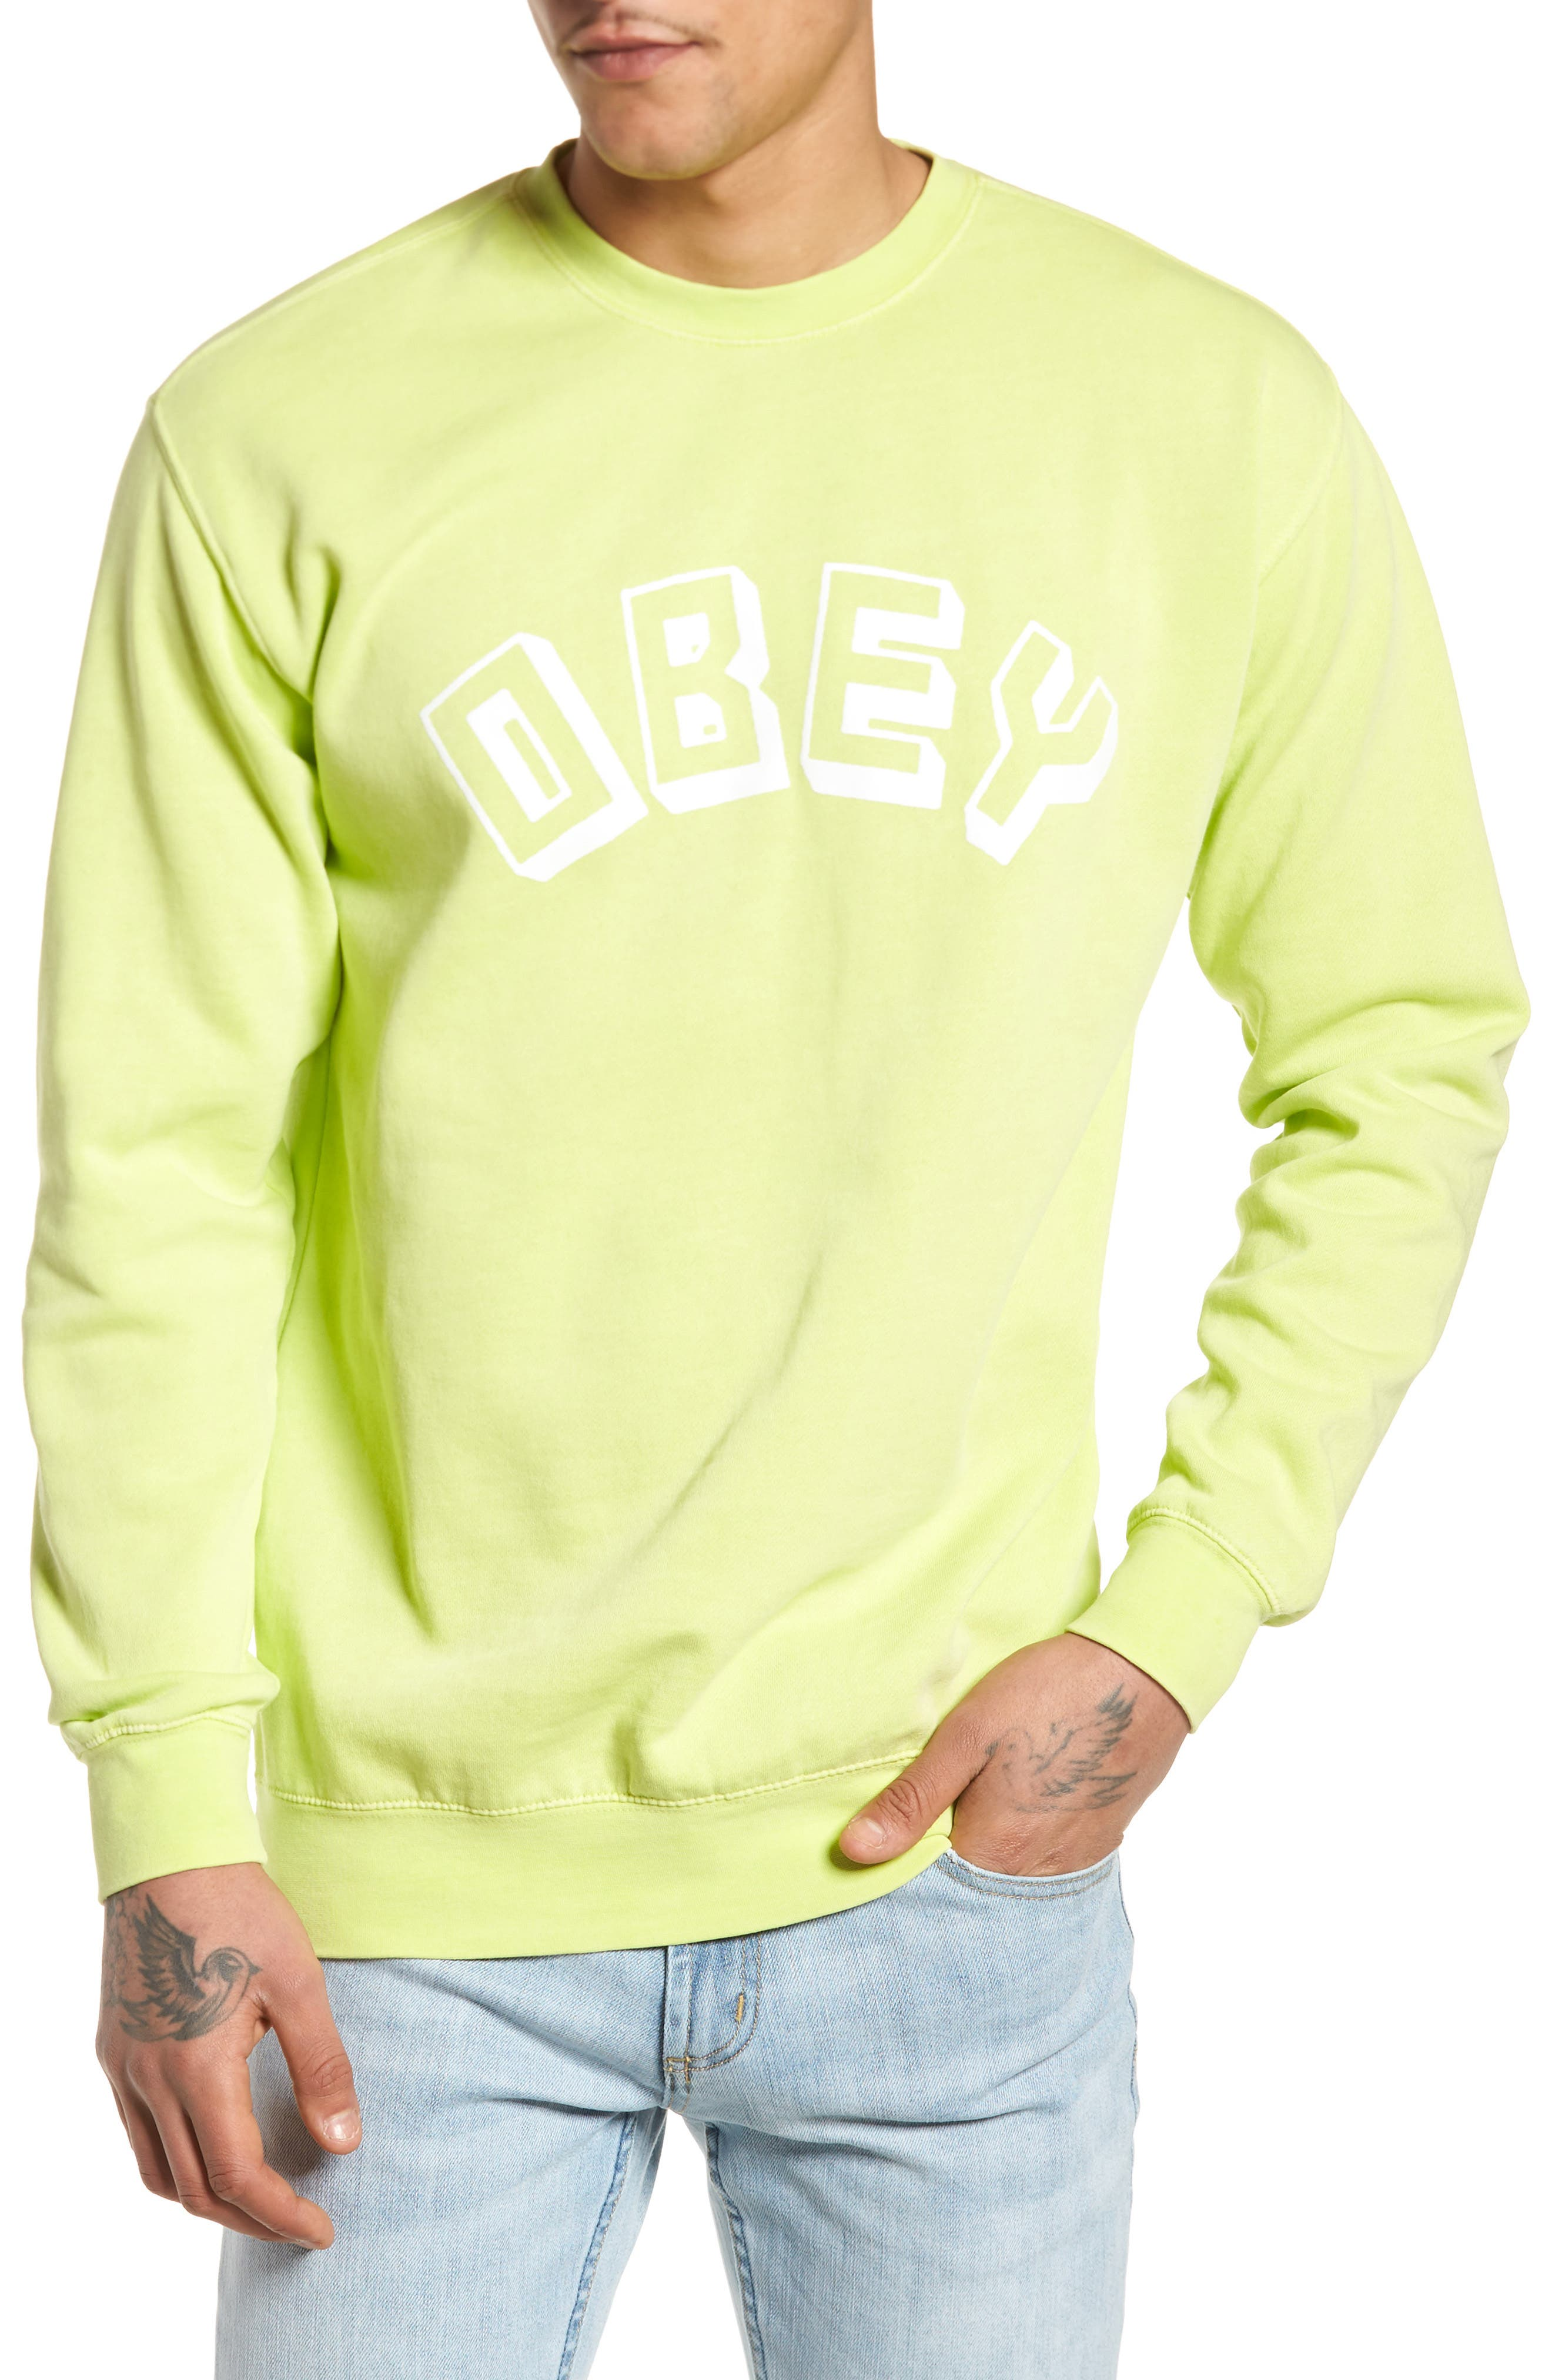 New World Sweatshirt,                         Main,                         color, 323